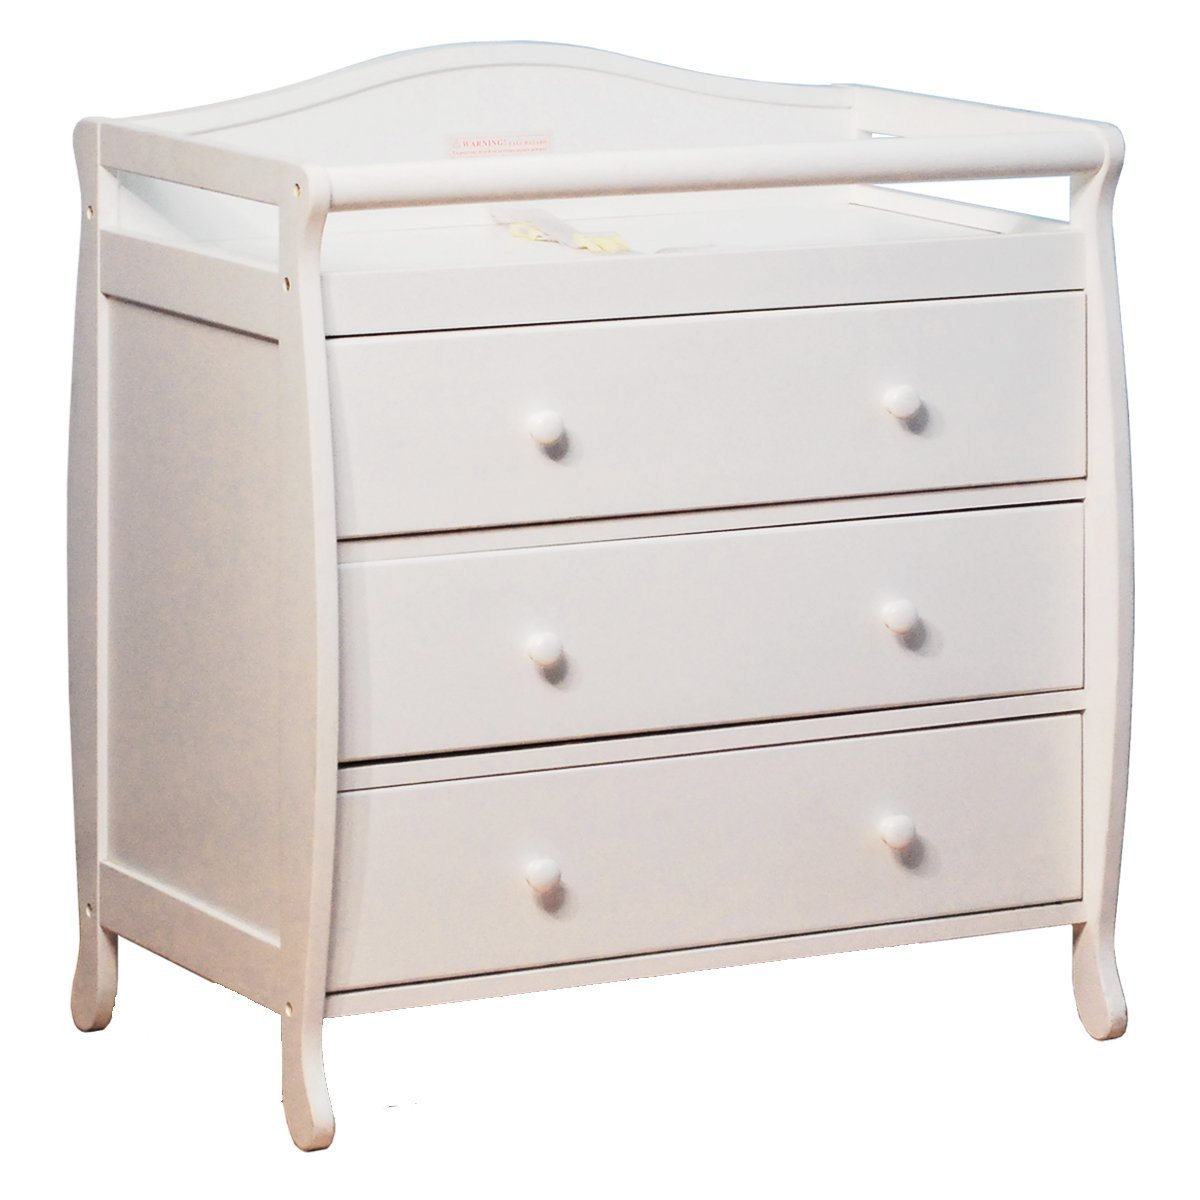 Dresser Changing Table Combo | Changing Table Dresser | Baby Dresser Walmart